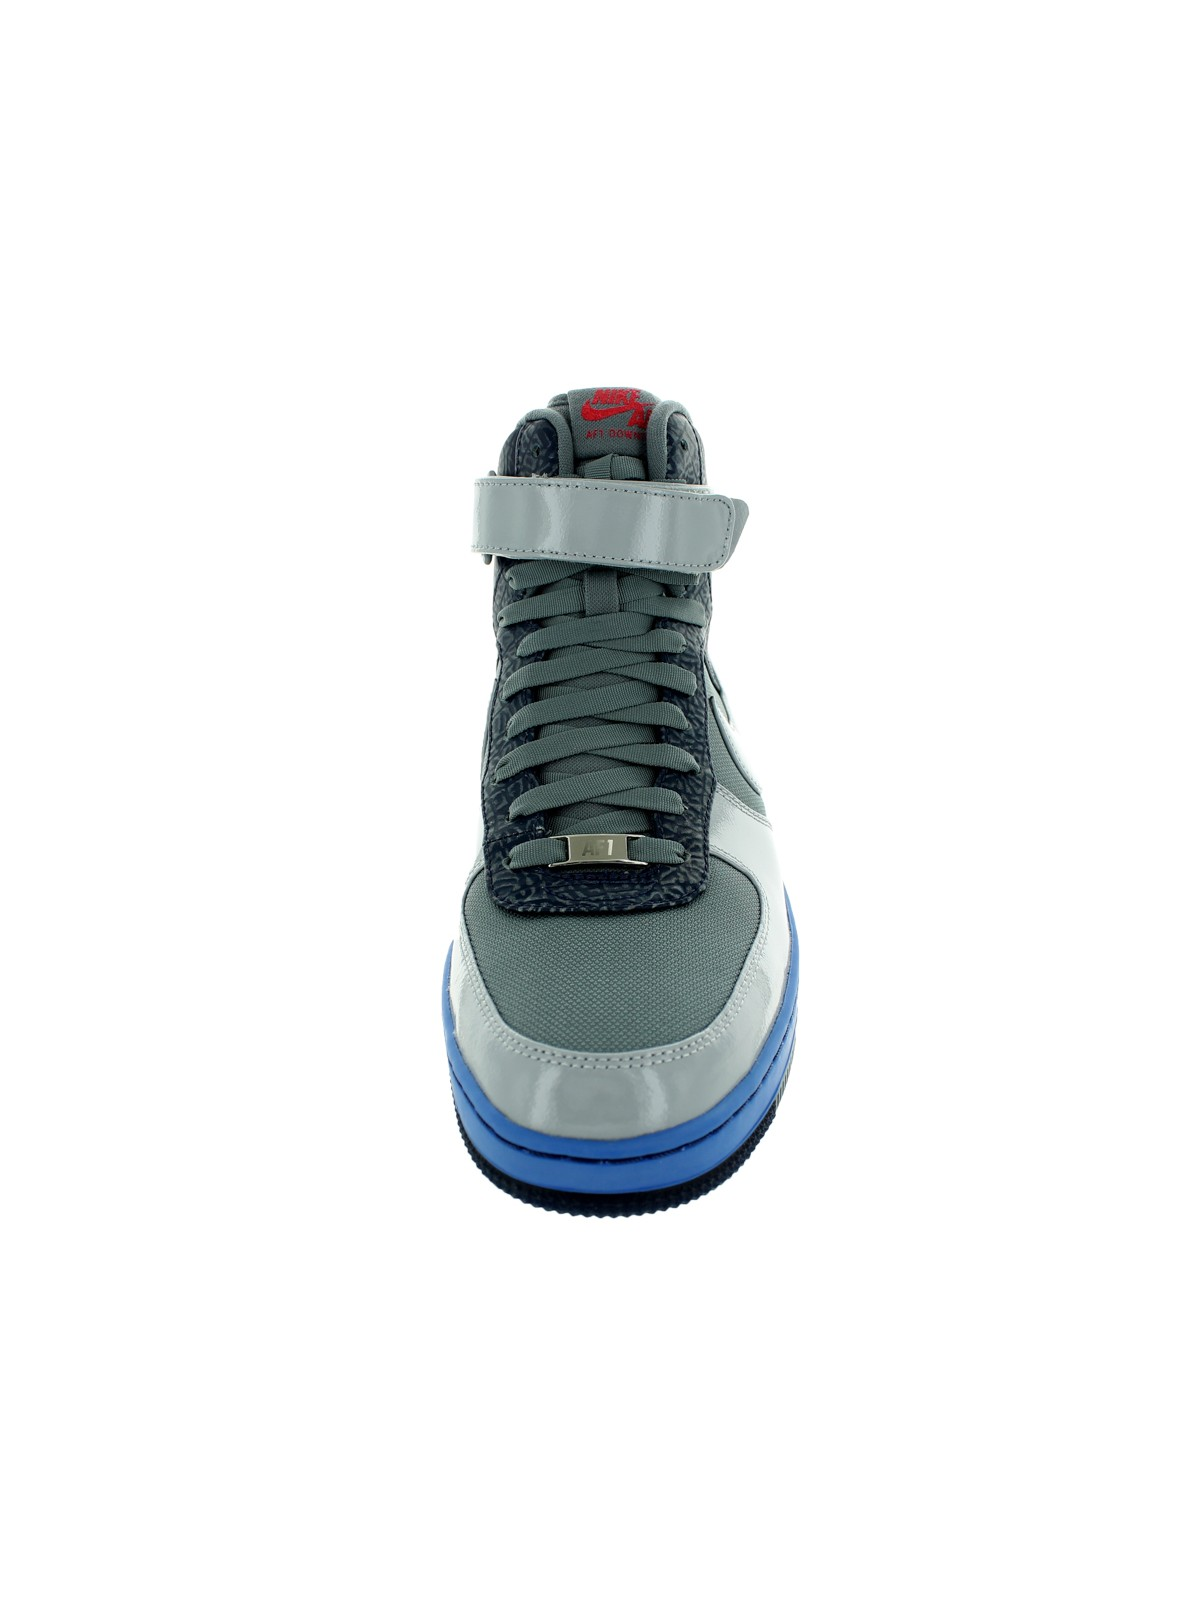 Nike Men's AF1 Downtown Hi Basketball Shoe